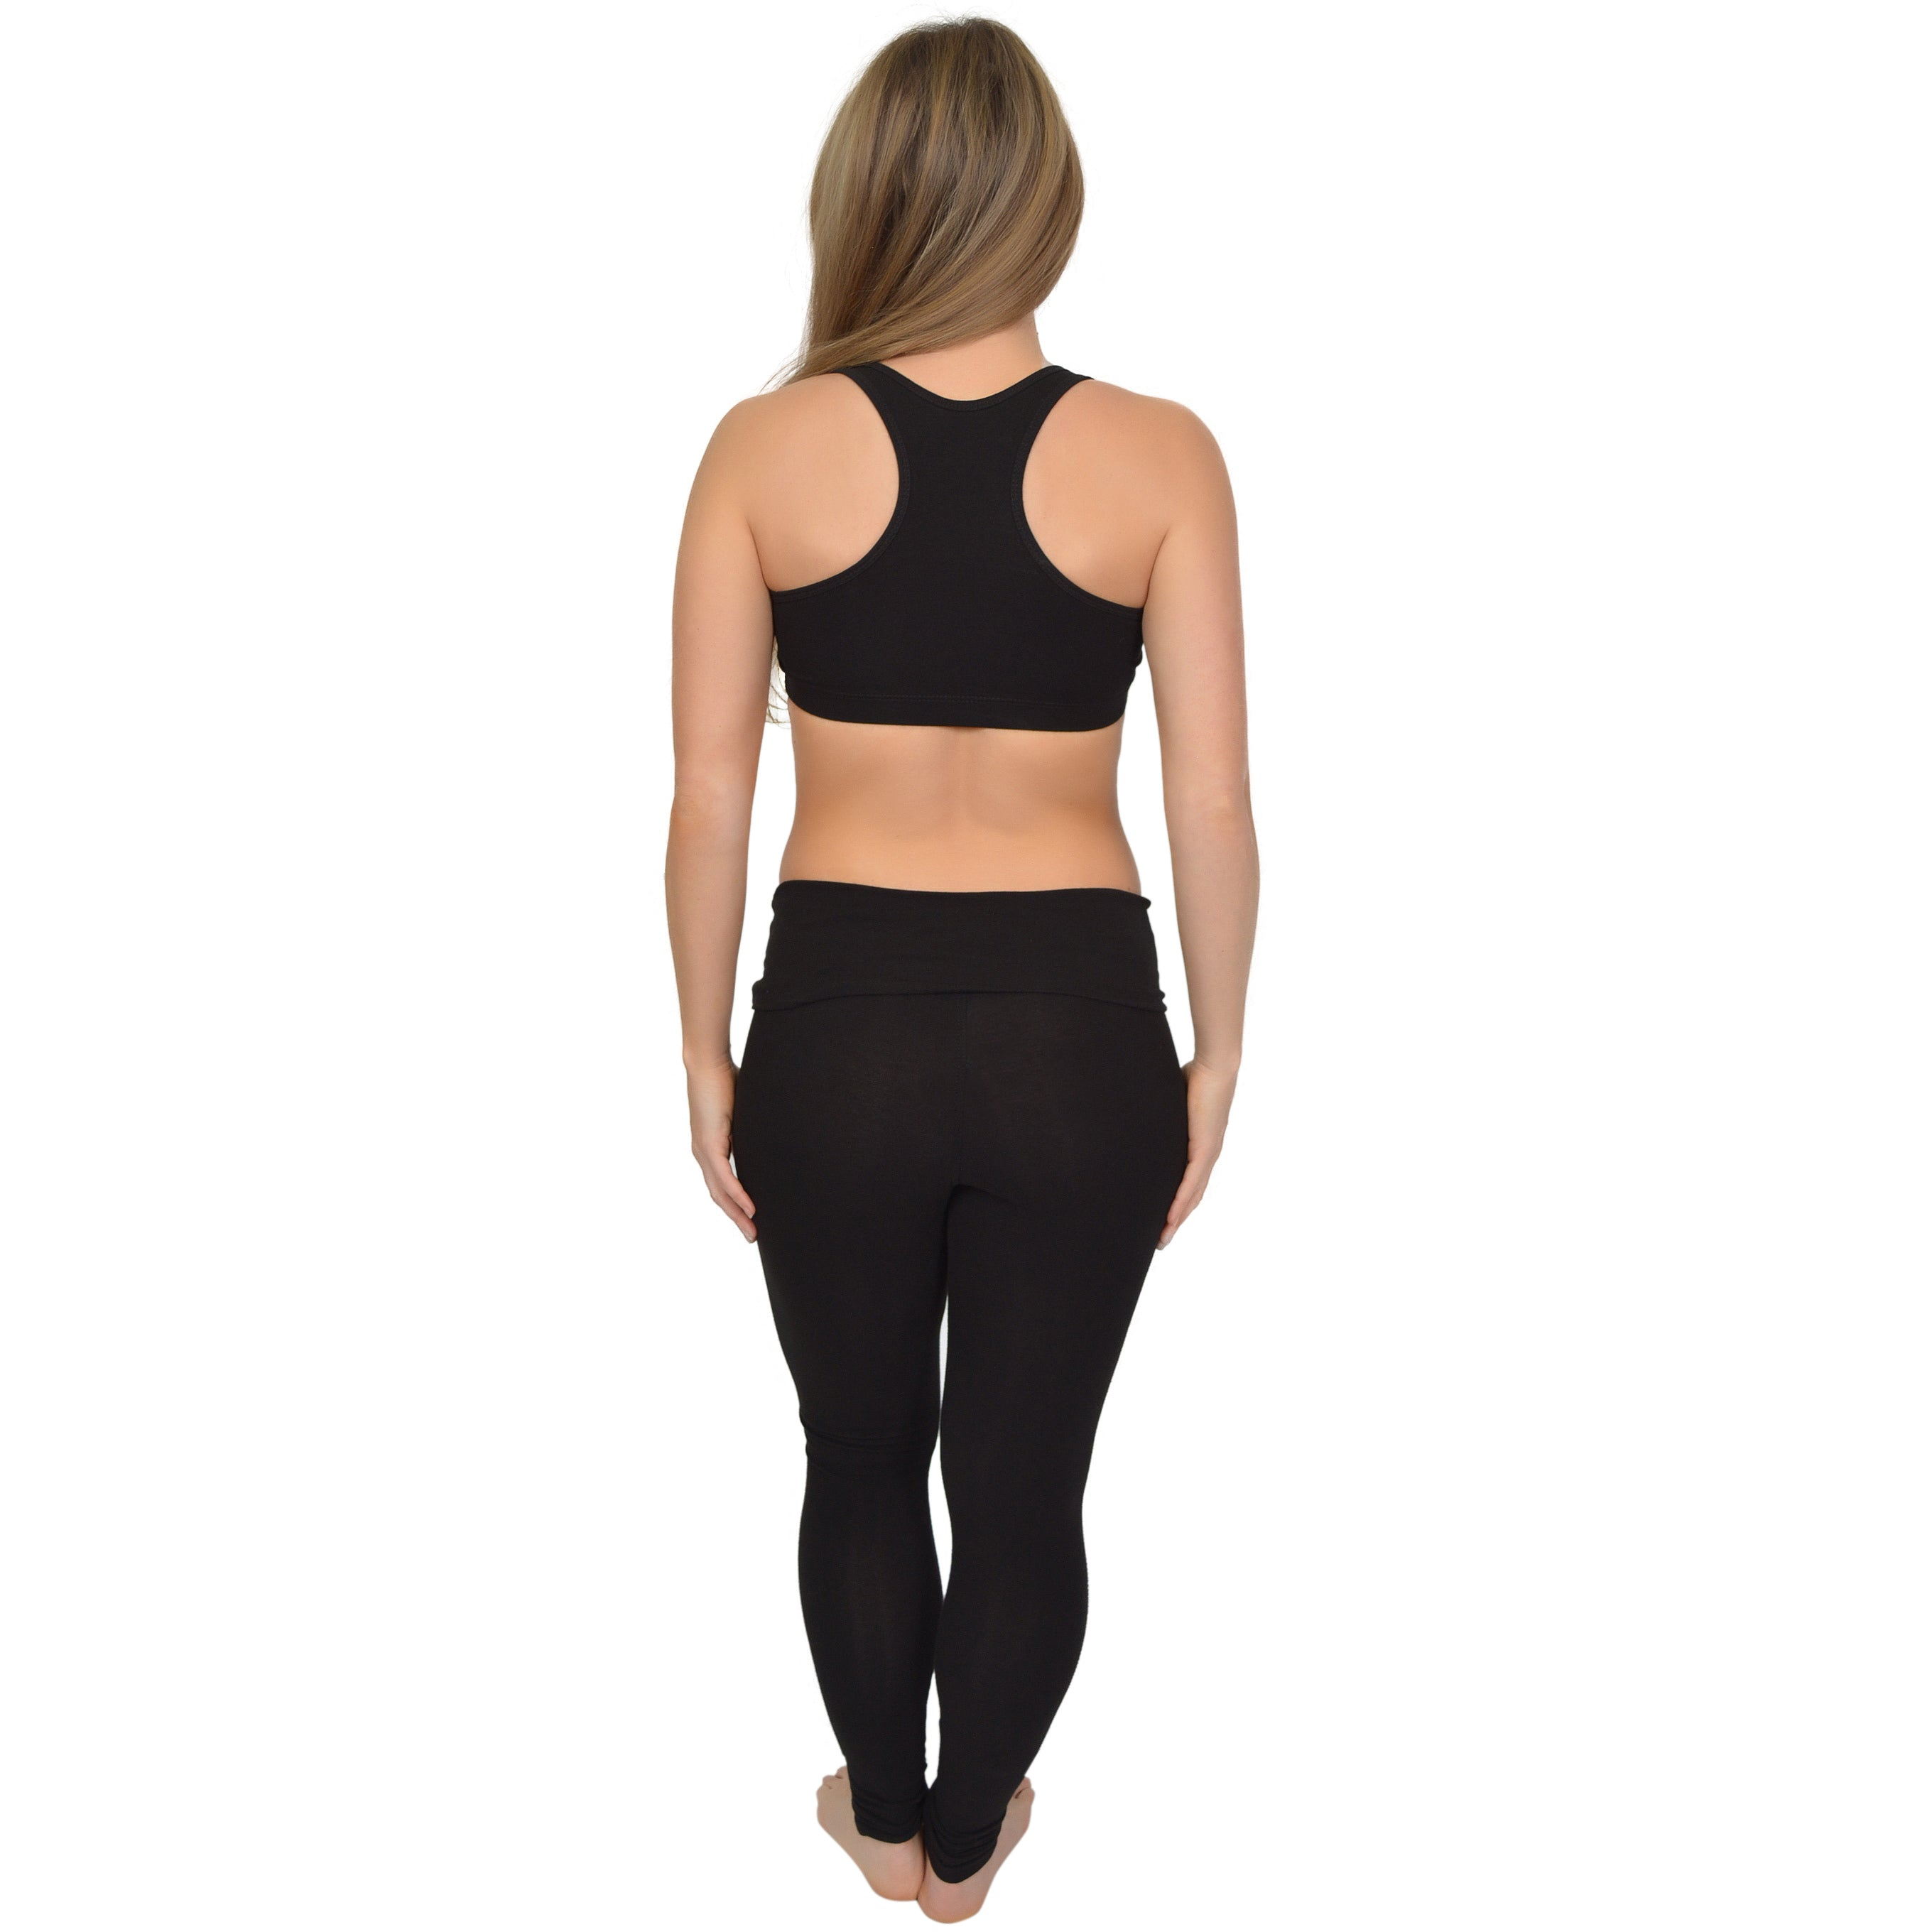 Teamwear Racerback CHEER 360 South Bay Sports Bra